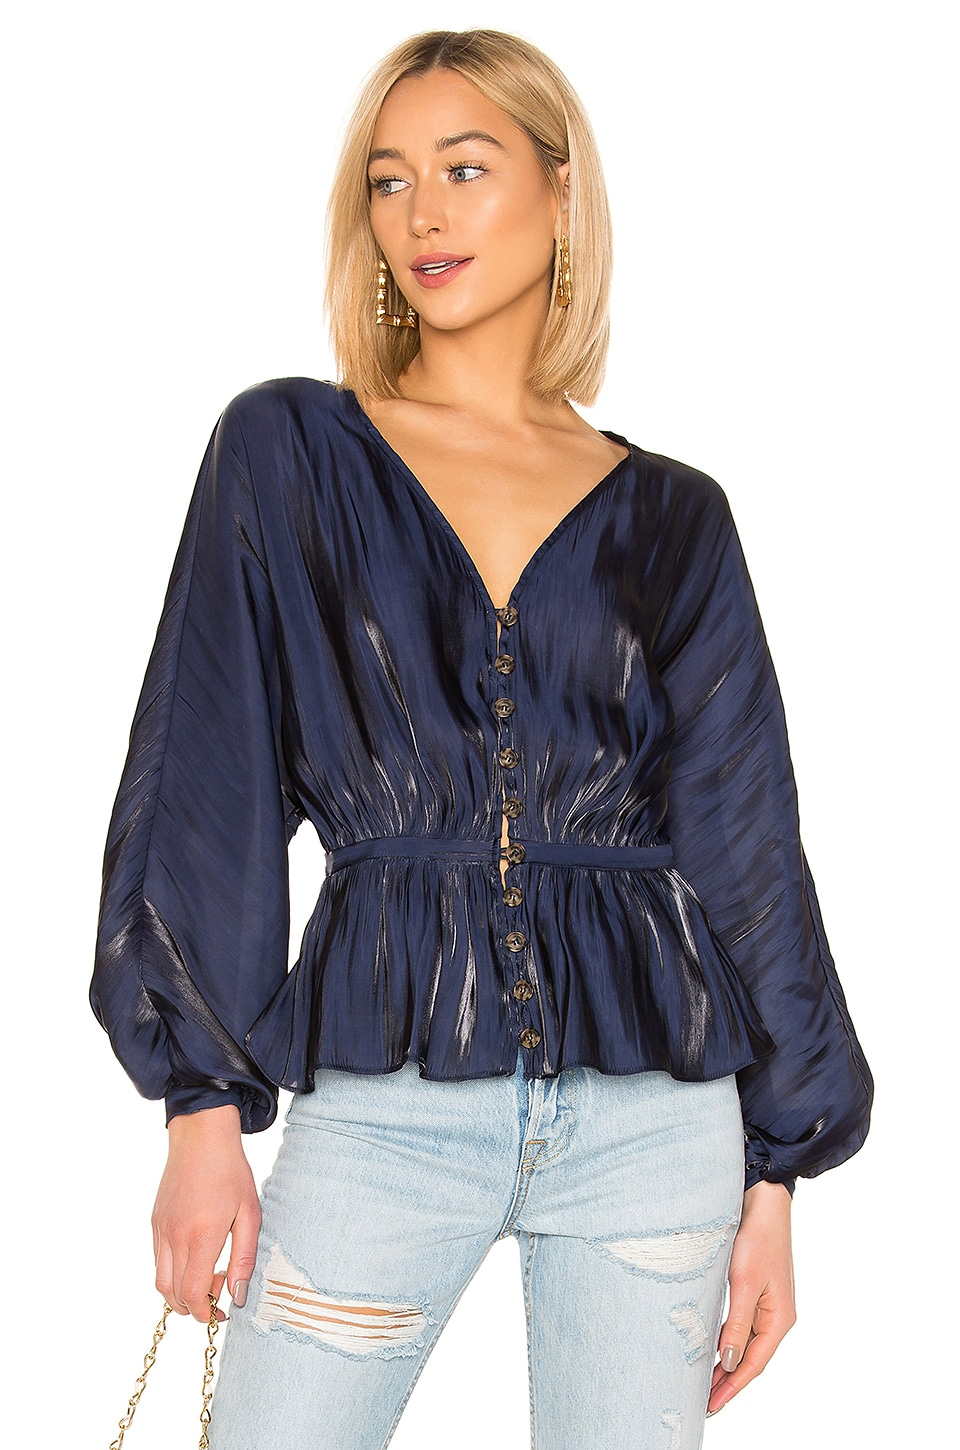 L'Academie The Diane Blouse en Eclipse